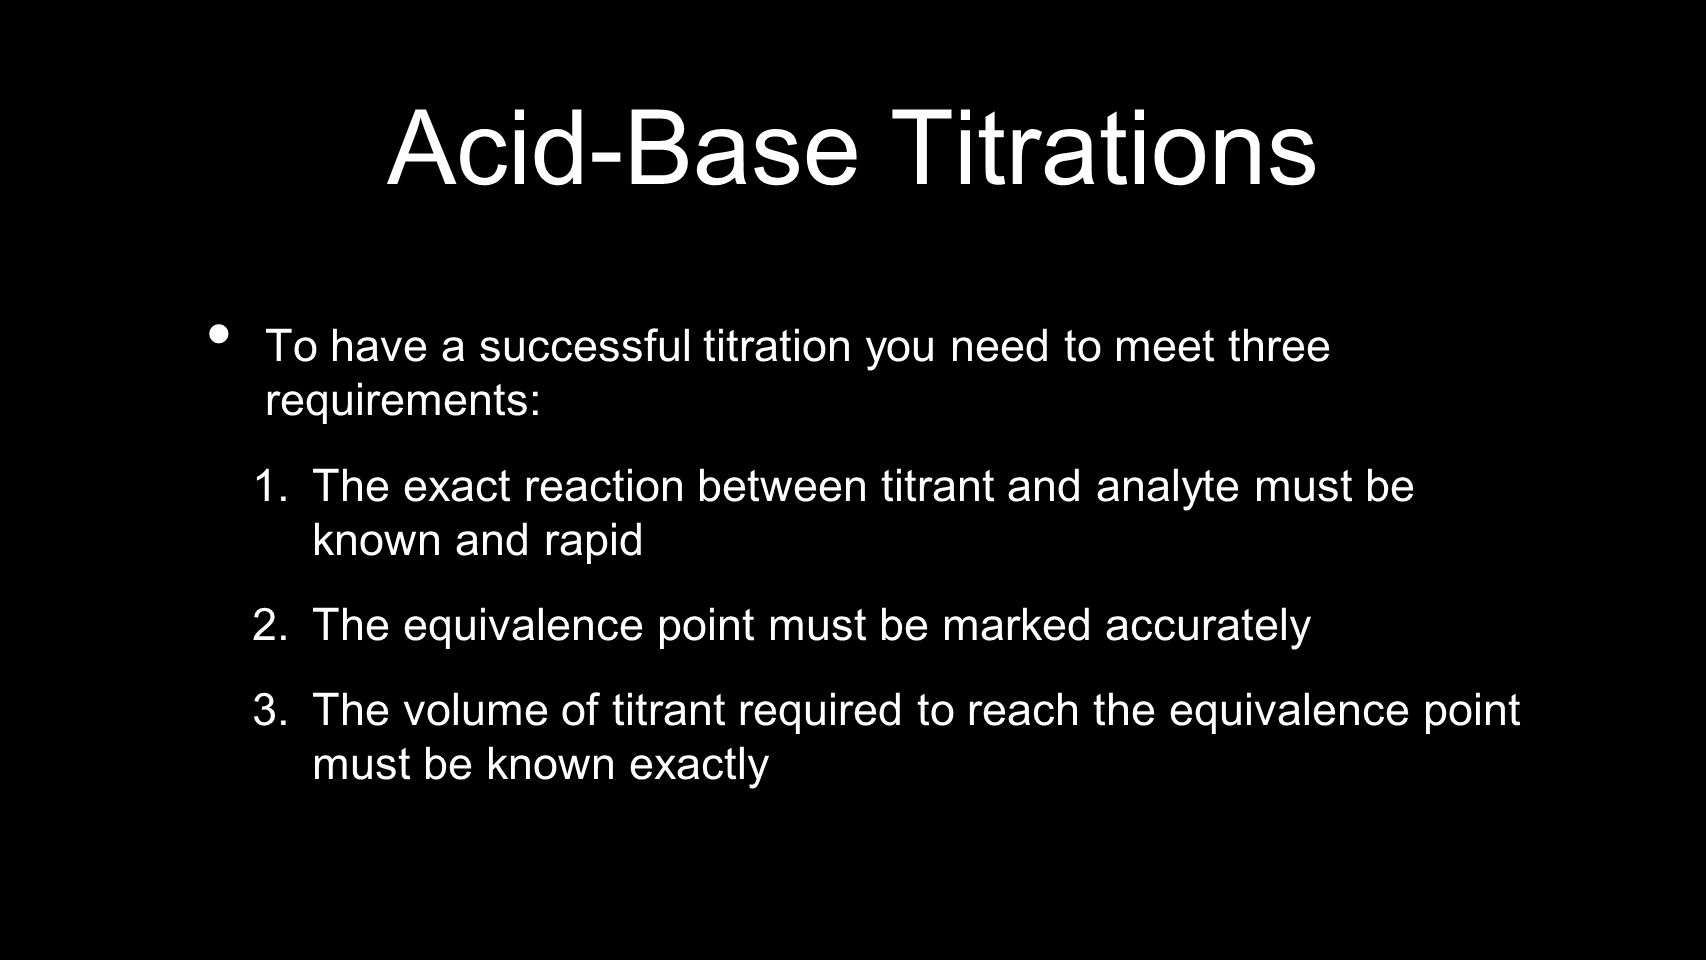 Acid-Base Titrations To have a successful titration you need to meet three requirements: